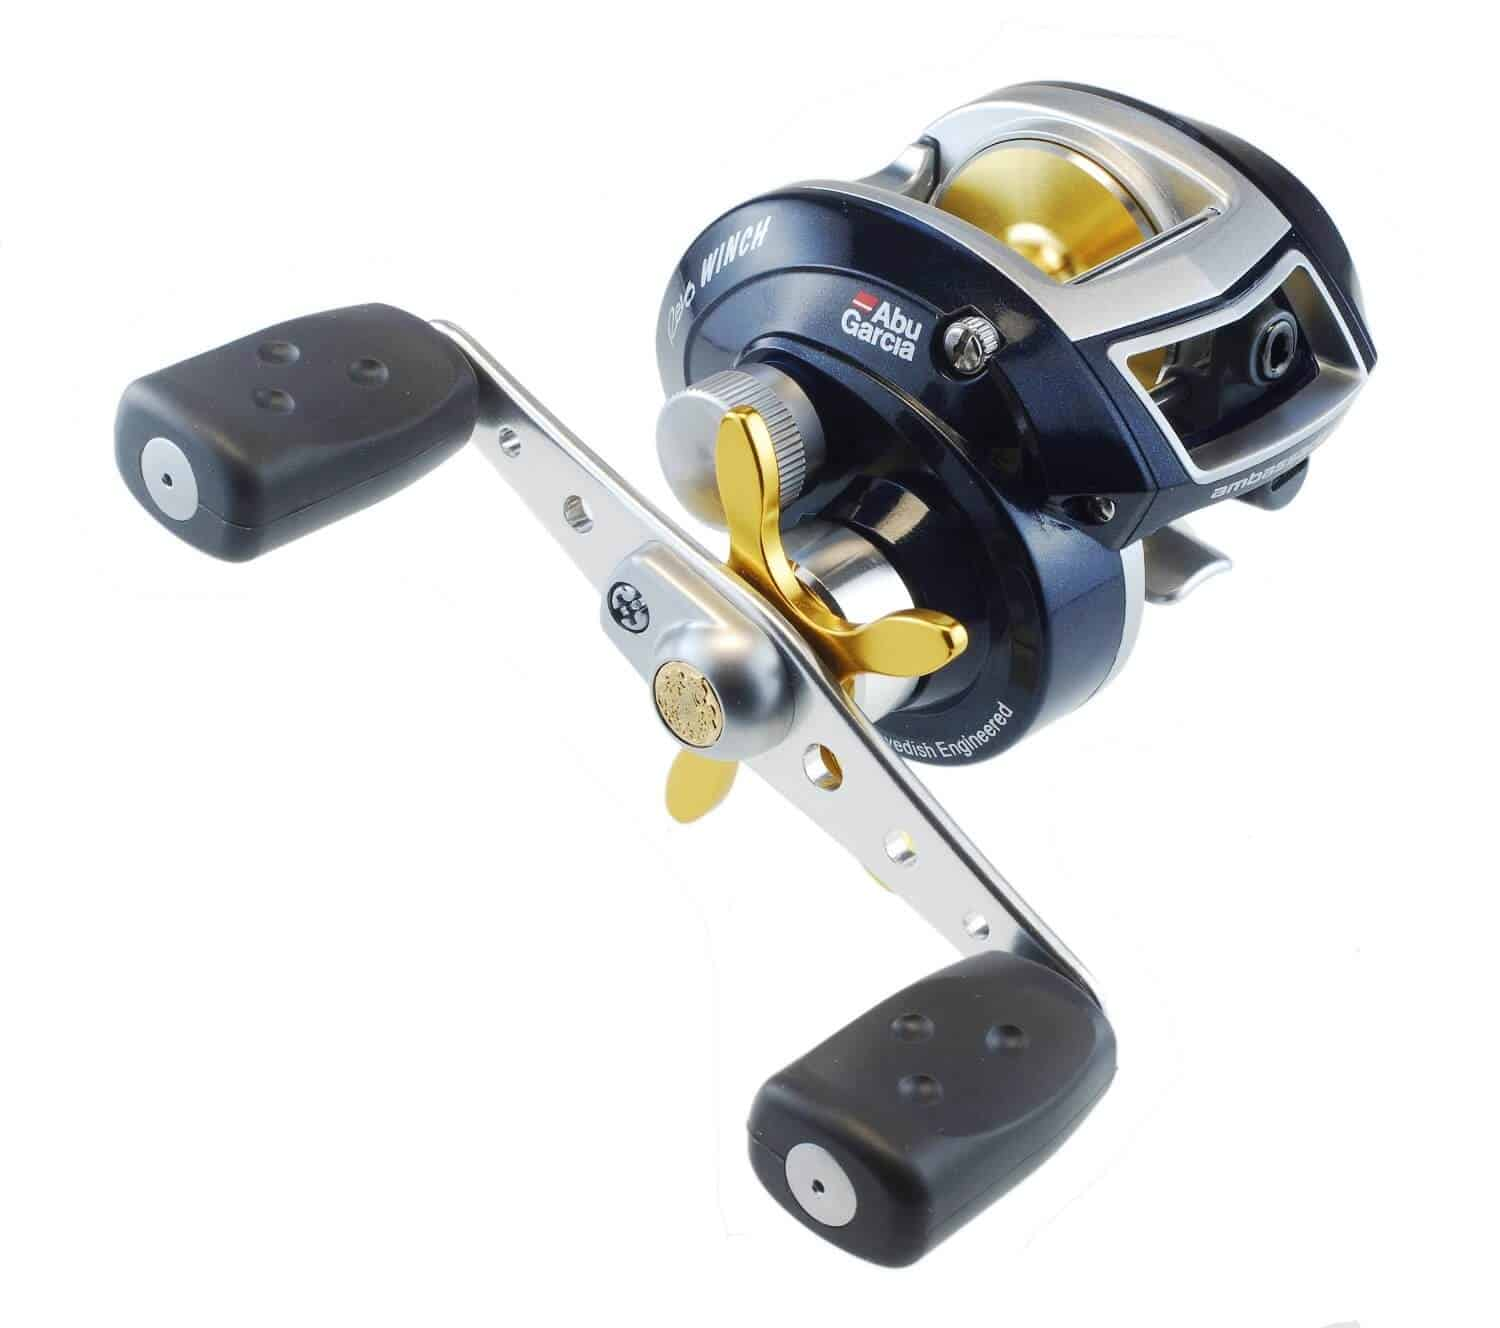 Cheap discount abu garcia revo inshore toro stx winch for Cheap fishing reels